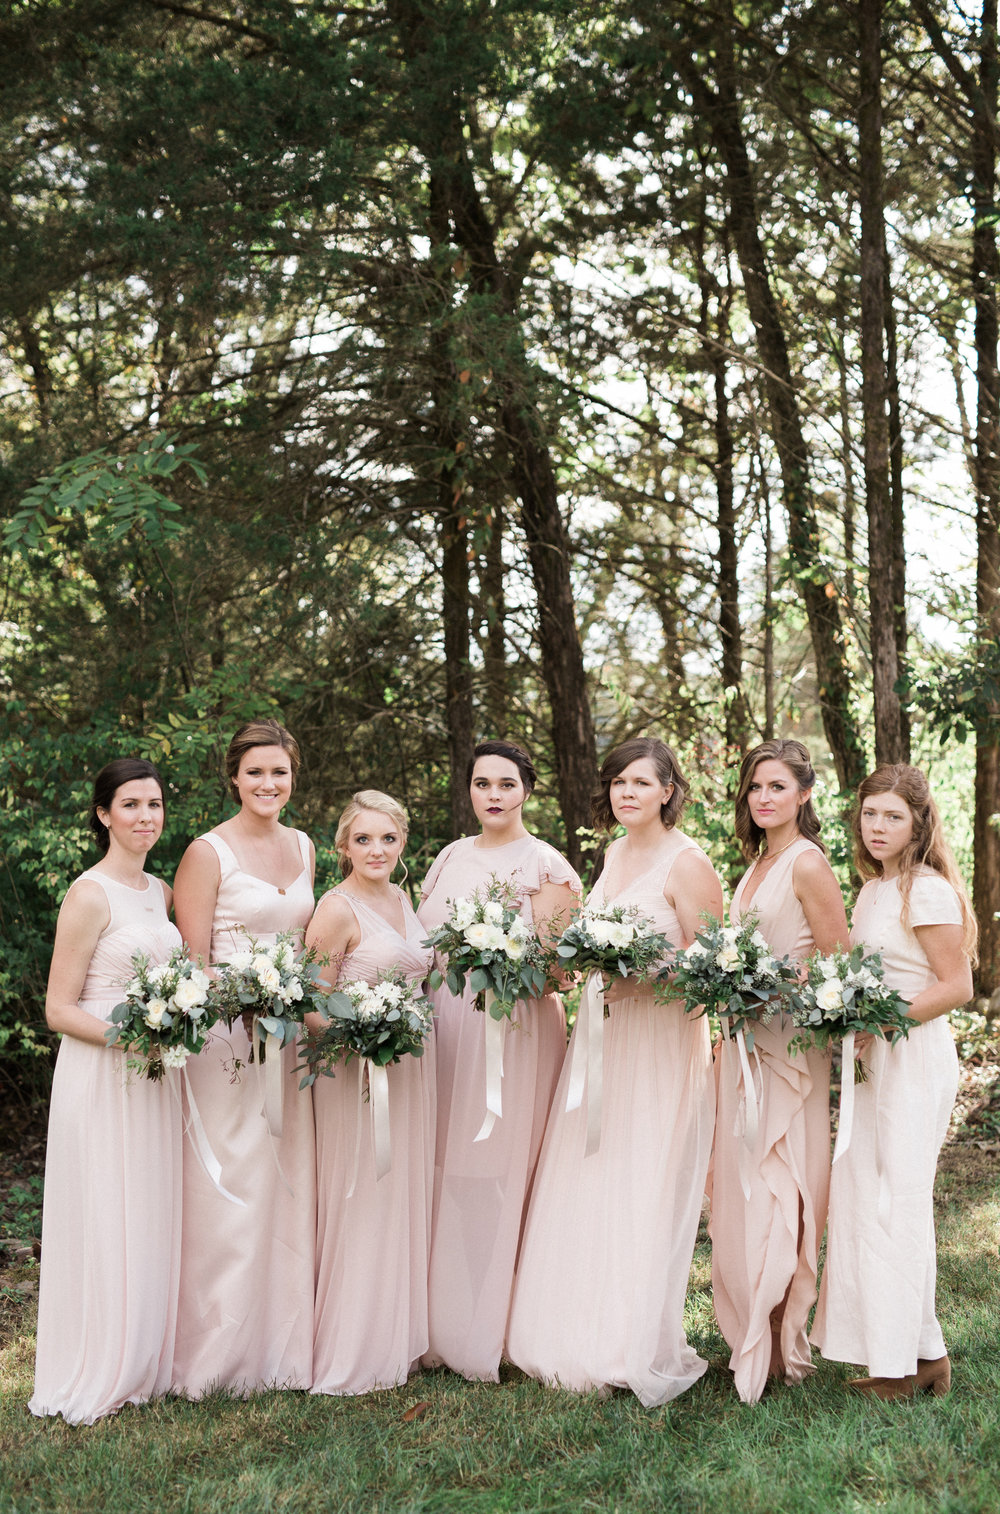 Mikaela Hamilton- Ben & Emily- bridal party-89.jpg